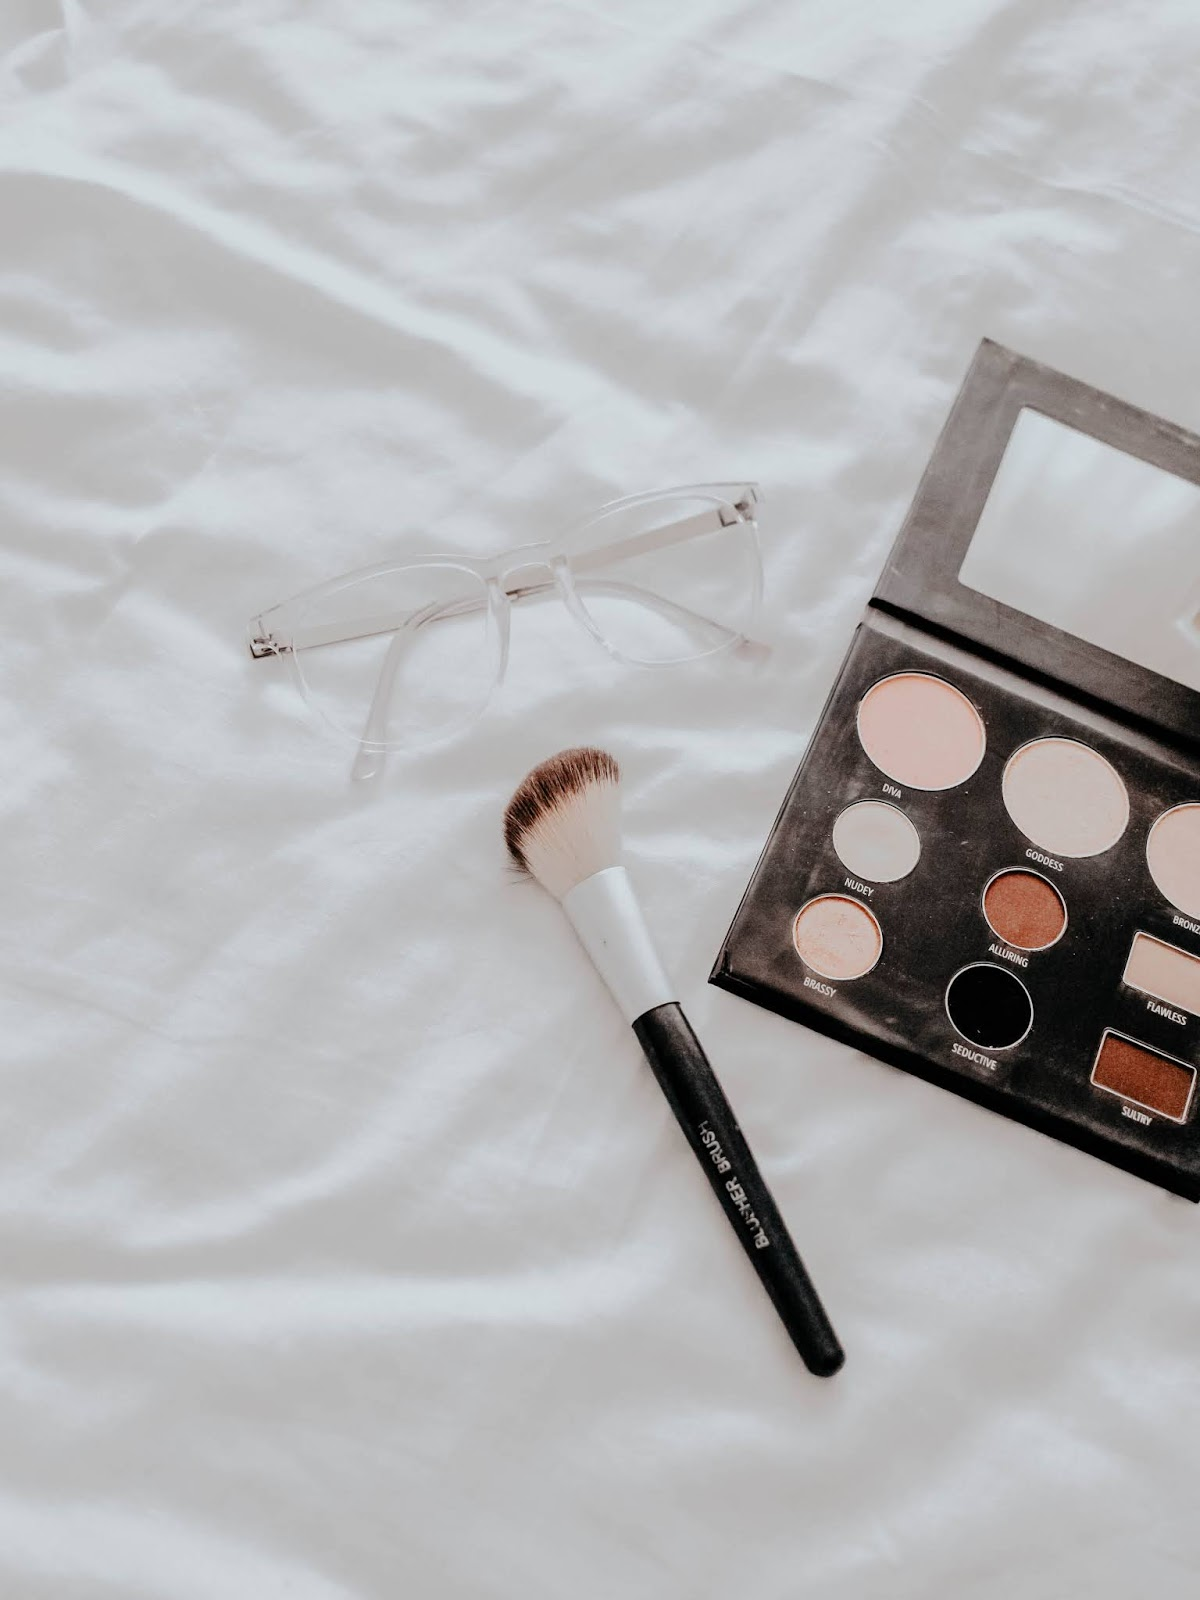 love neutral colors in everything. My bedroom decor is neutral, my clothes are mostly neutral and the makeup I wear is pretty neutral as well. Neutral makeup is the best makeup as it goes well with anything you wear and you can easily transform it from day to night. Here are the best neutral everyday eyeshadow palettes in the market right now.